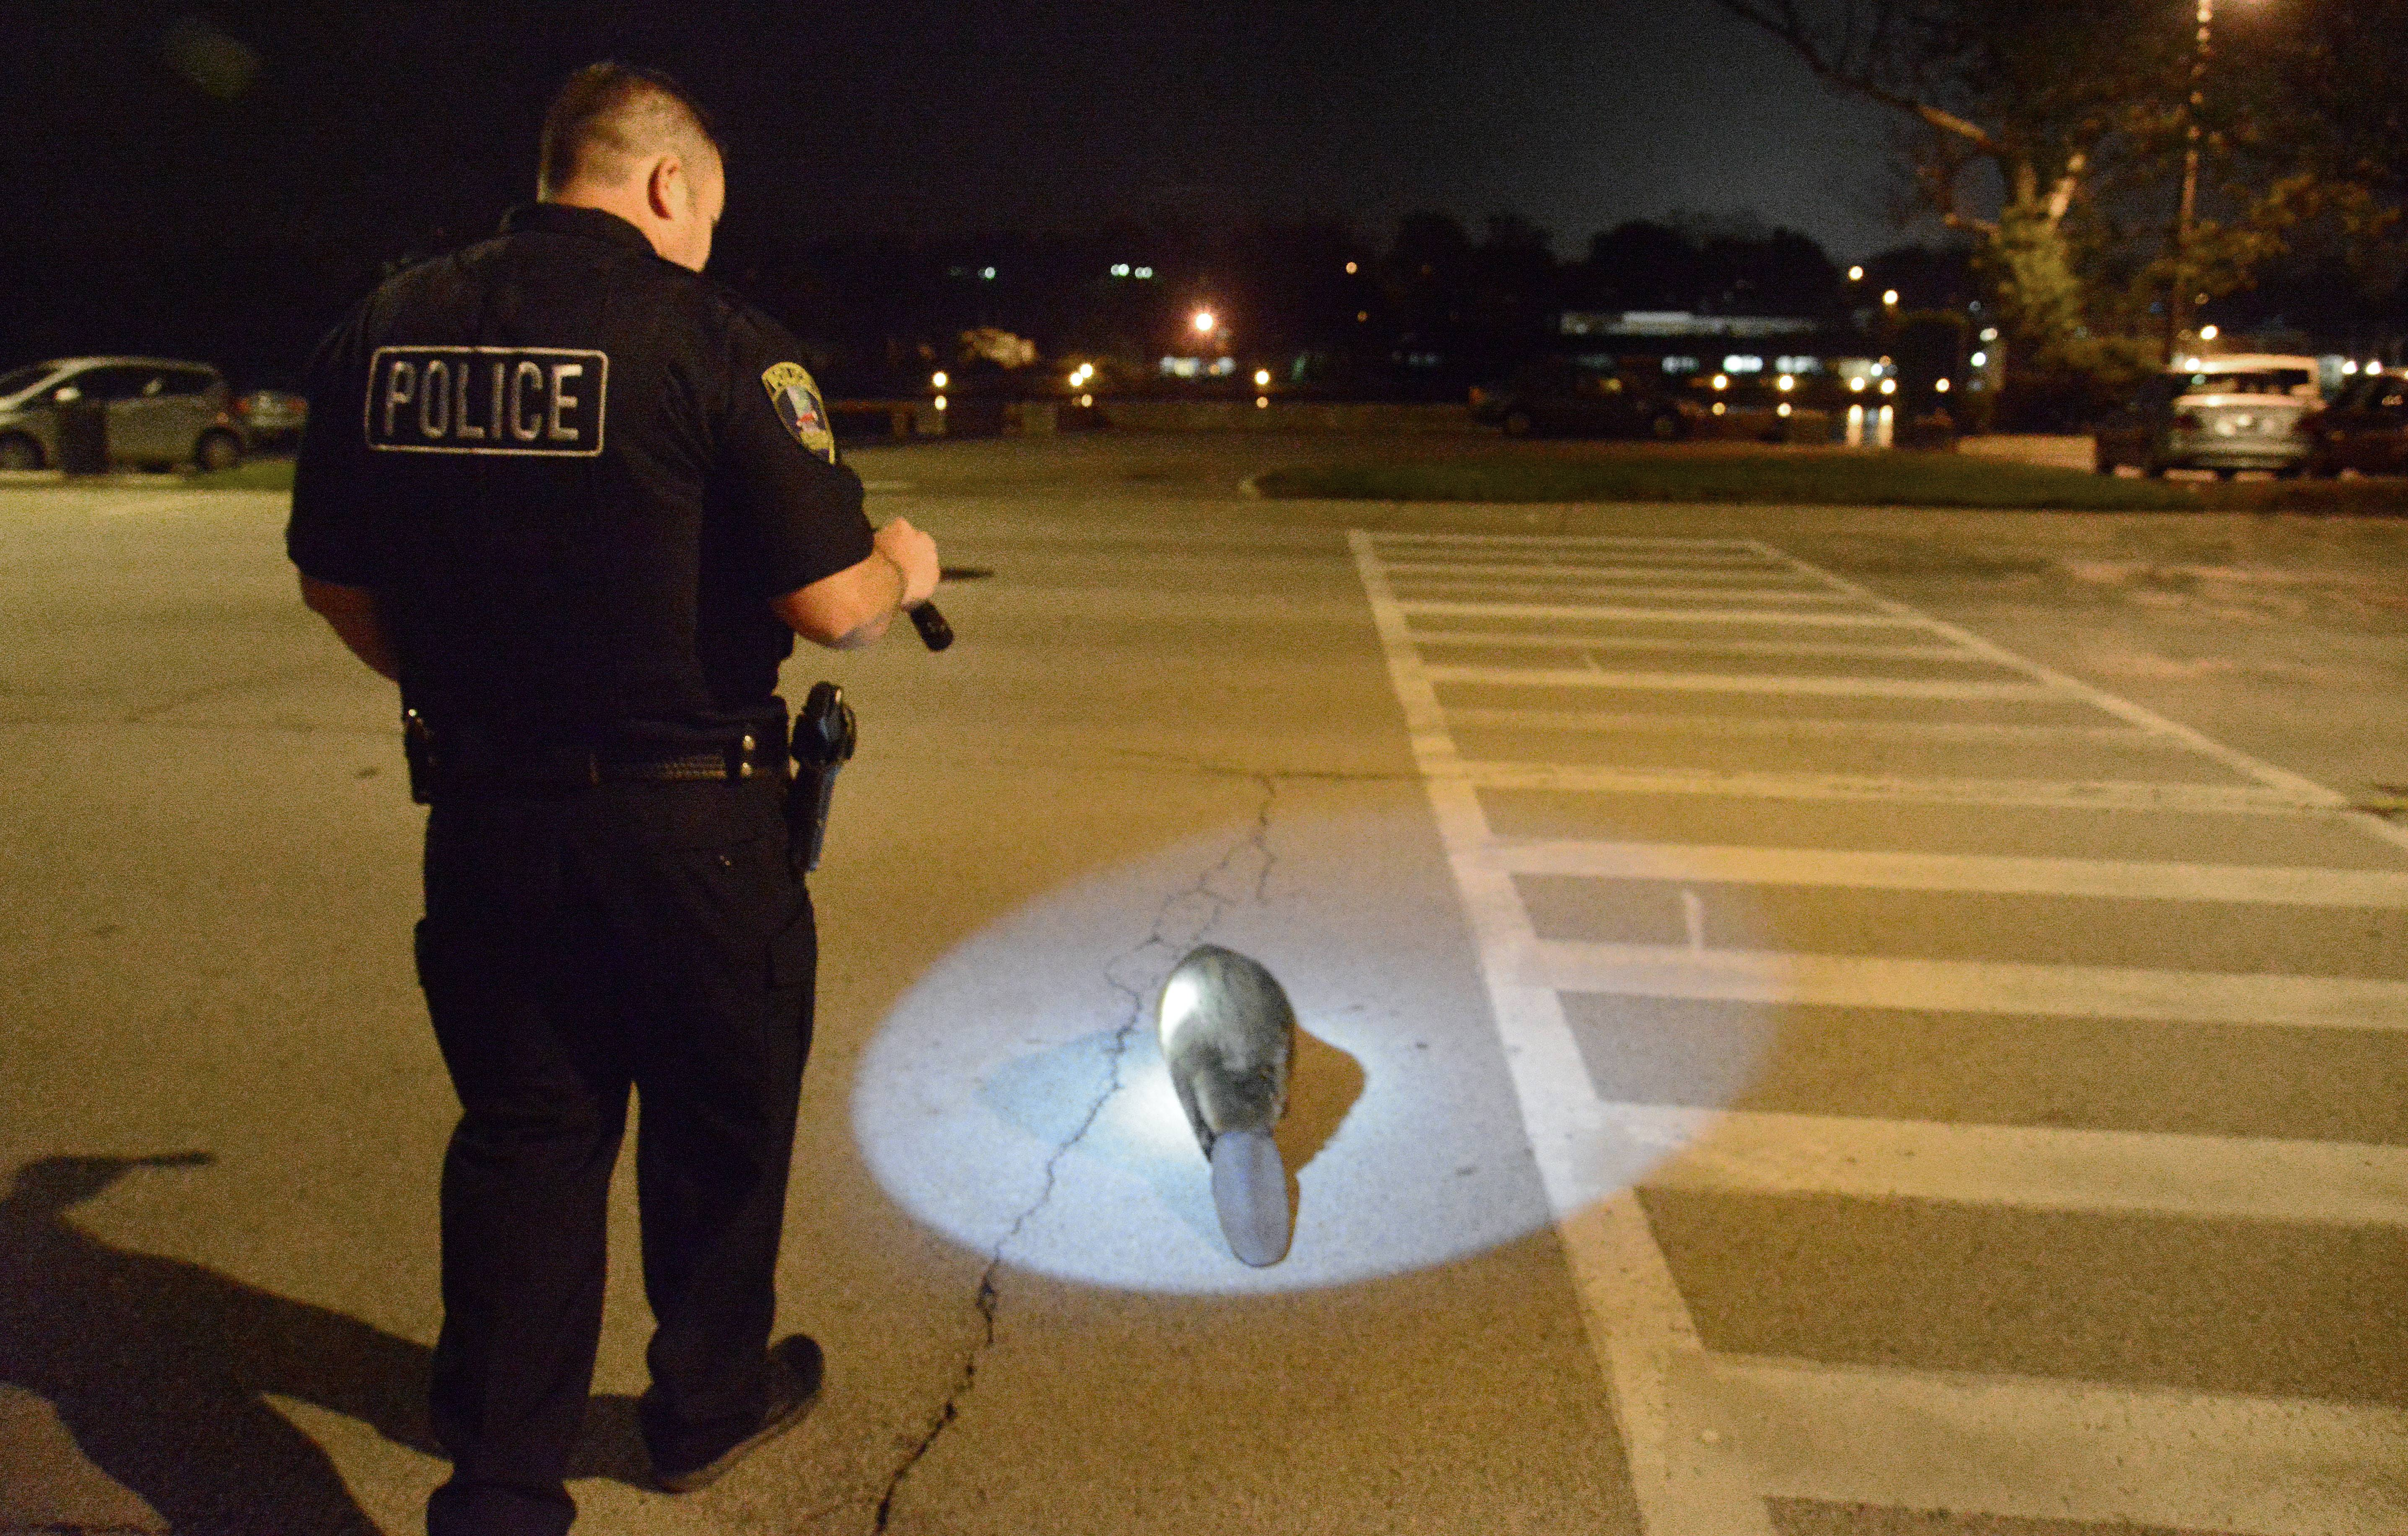 St. Charles Police Officer Charles Crumlett escorts a wild beaver across Route 31 back to the Fox River in downtown St. Charles after it was found walking westbound past the bars on Main Street late one night in April. I was on the way home from work when I saw it walking past the bars with crowds of people around it, so I quickly went around the block and parked, where the police were already on the scene. In all my years out here, I have never seen this before! However, Crumlett says it happens a few times a year and the police are called to help the critters back to the river. (He's had this particular assignment before. Some animals they even recognize.) This guy took his sweet time, stopping frequently to dine on greenery along the bank of the river over the course of about a half hour before dipping back into the water. This photo was published in the Perspective column in the print edition of the Daily Herald.